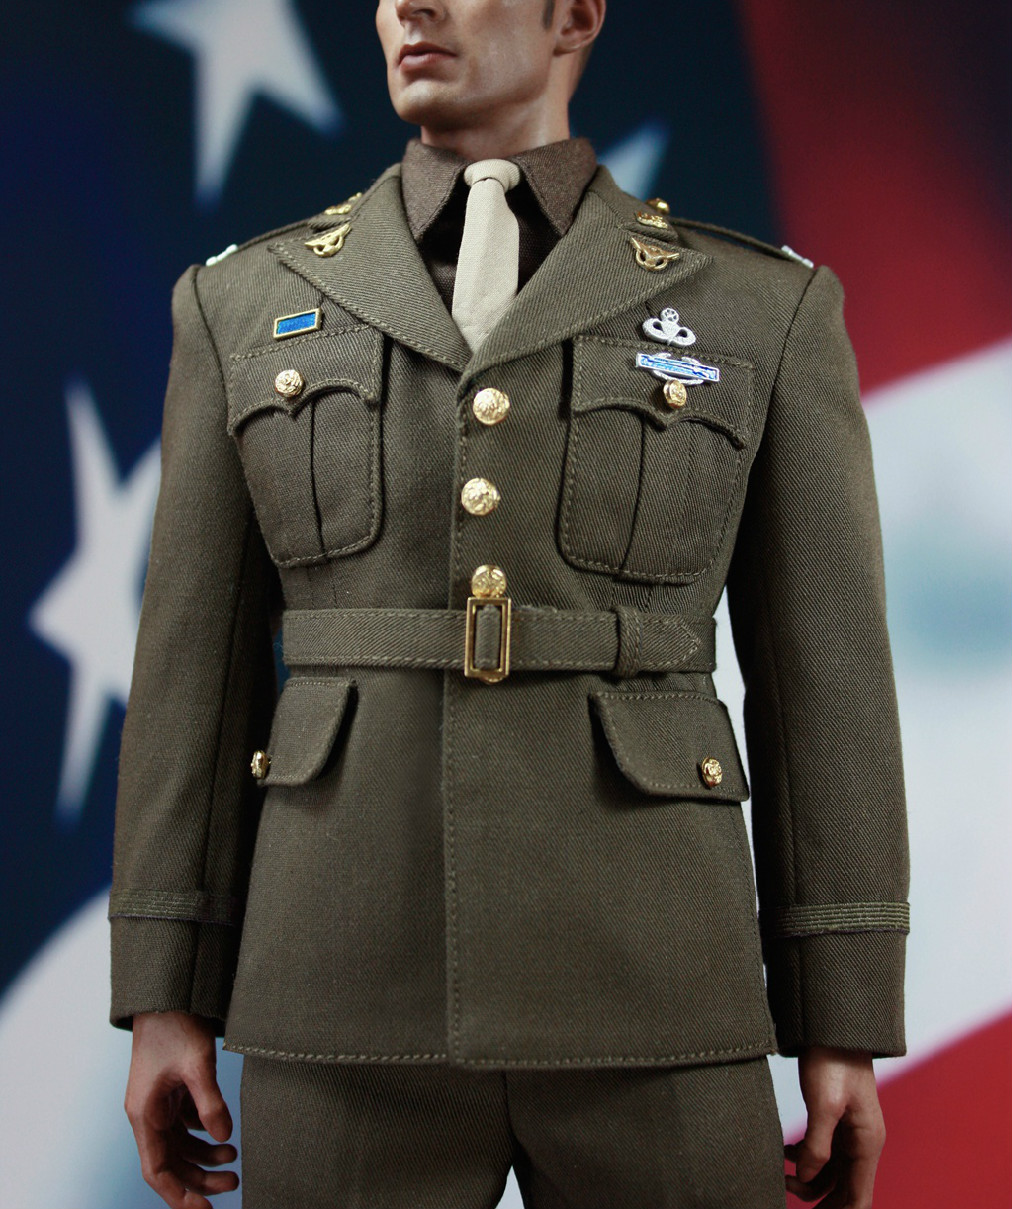 Estartek X19 1/6 The Captain of The Golden Age Uniform Suit for 12inch Action Figure DIY 1 6 3r did gm617 2nd edition hermann goering head of the luftwaffe blue uniform action figure toys collections m3